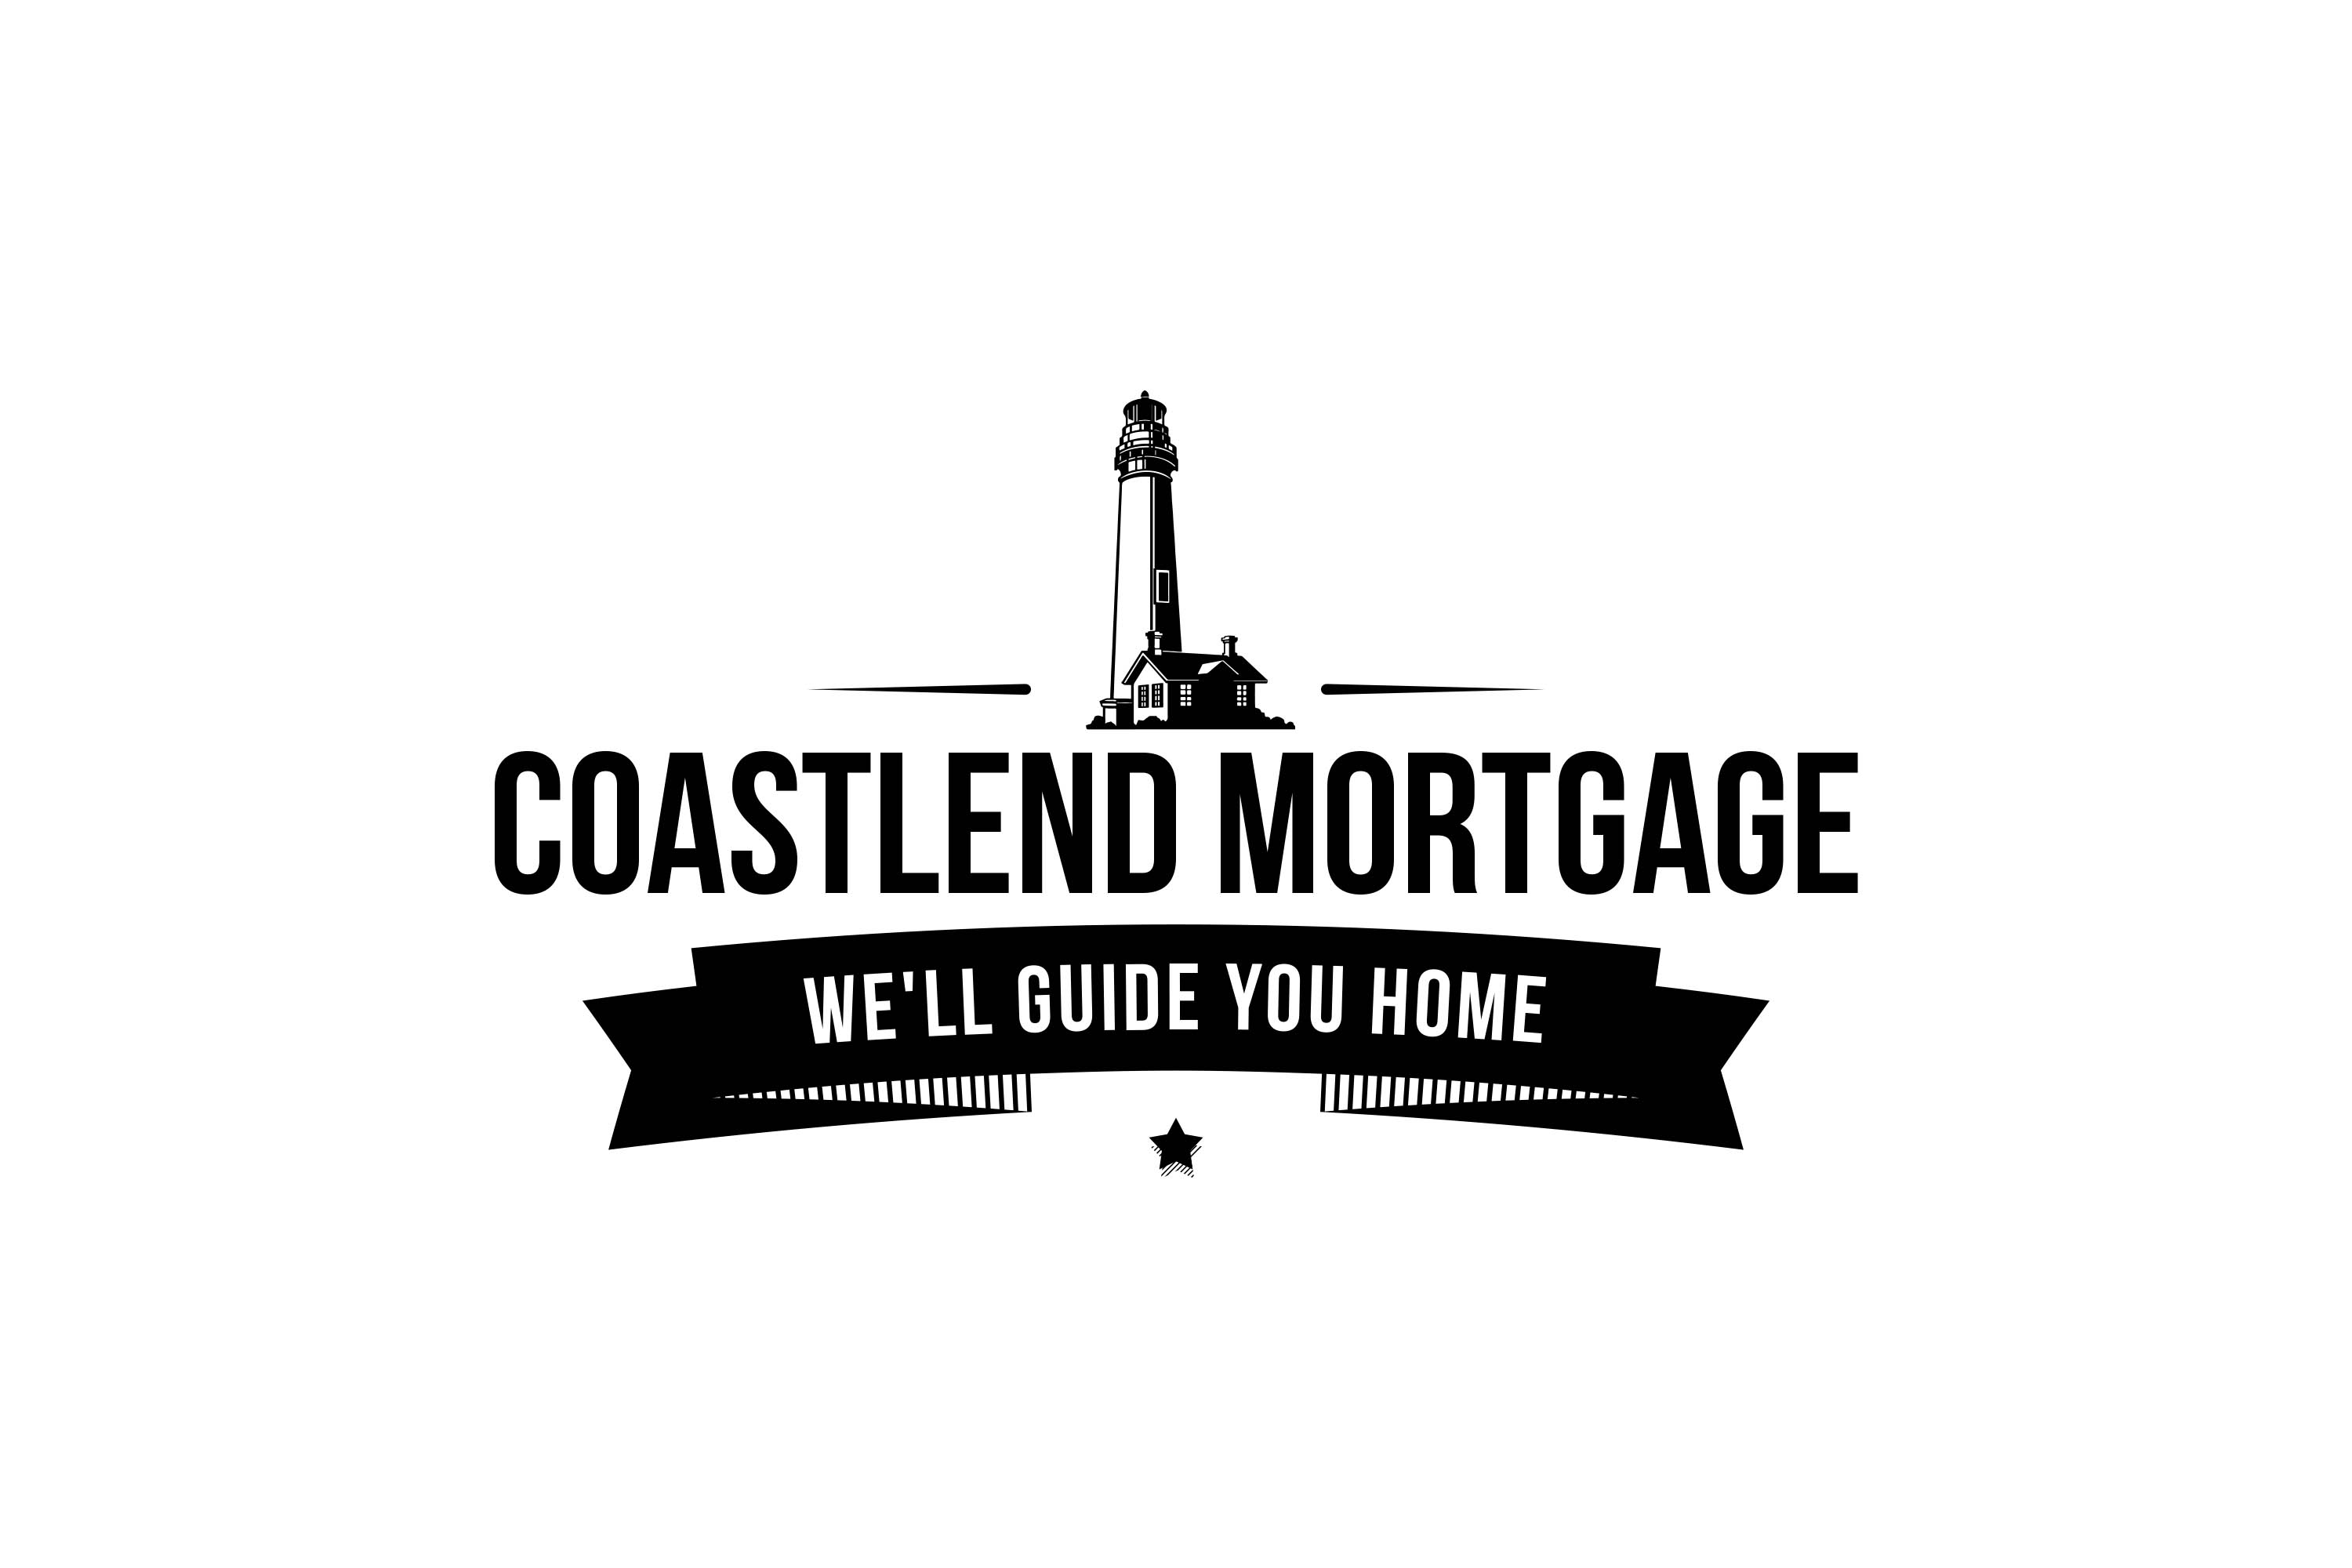 Coastlend Mortgage